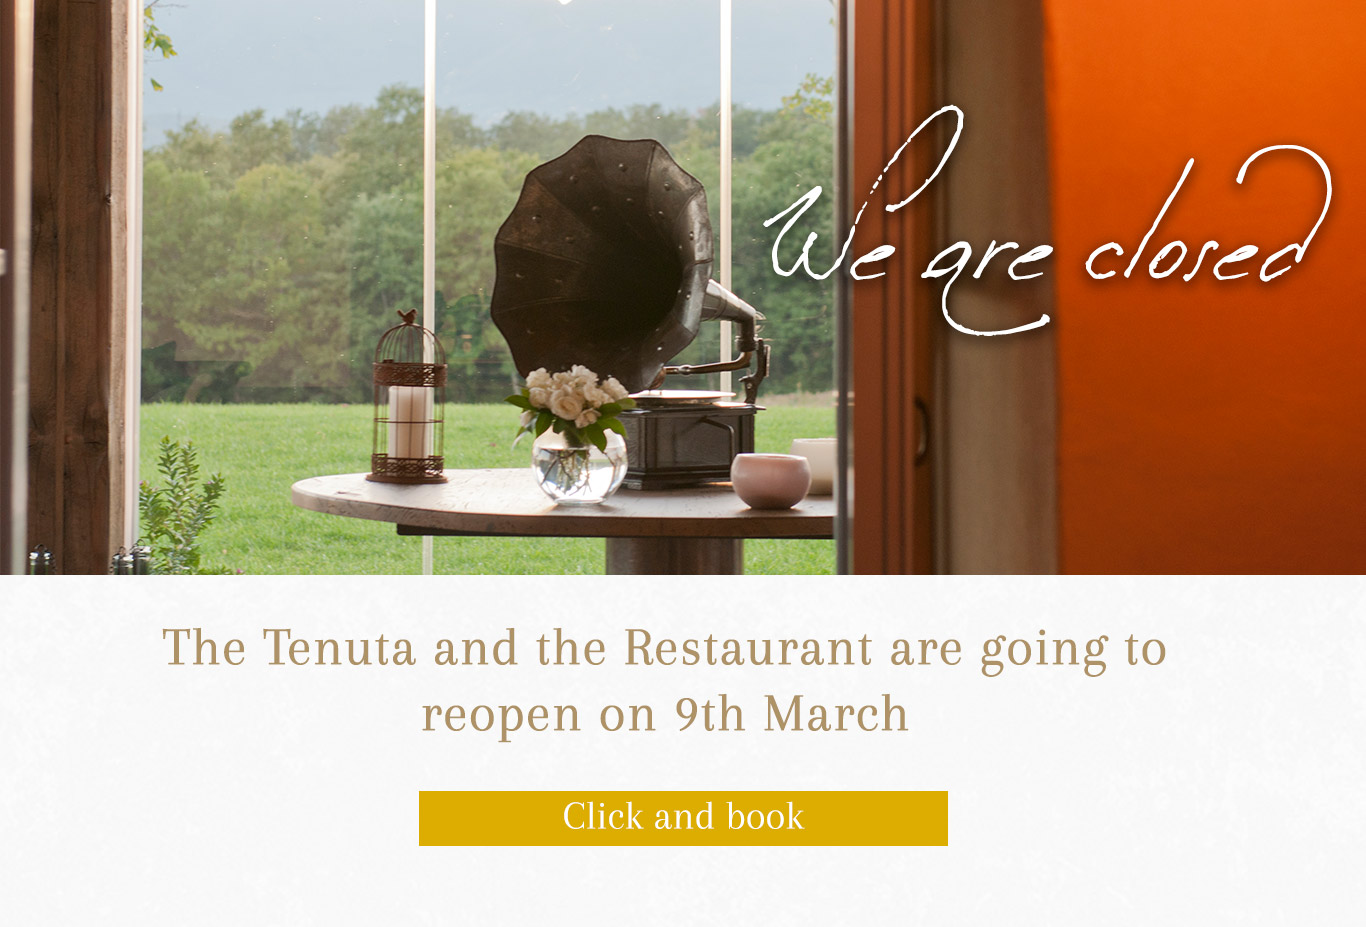 The Tenuta and the Restaurant are going to reopen on 9th March